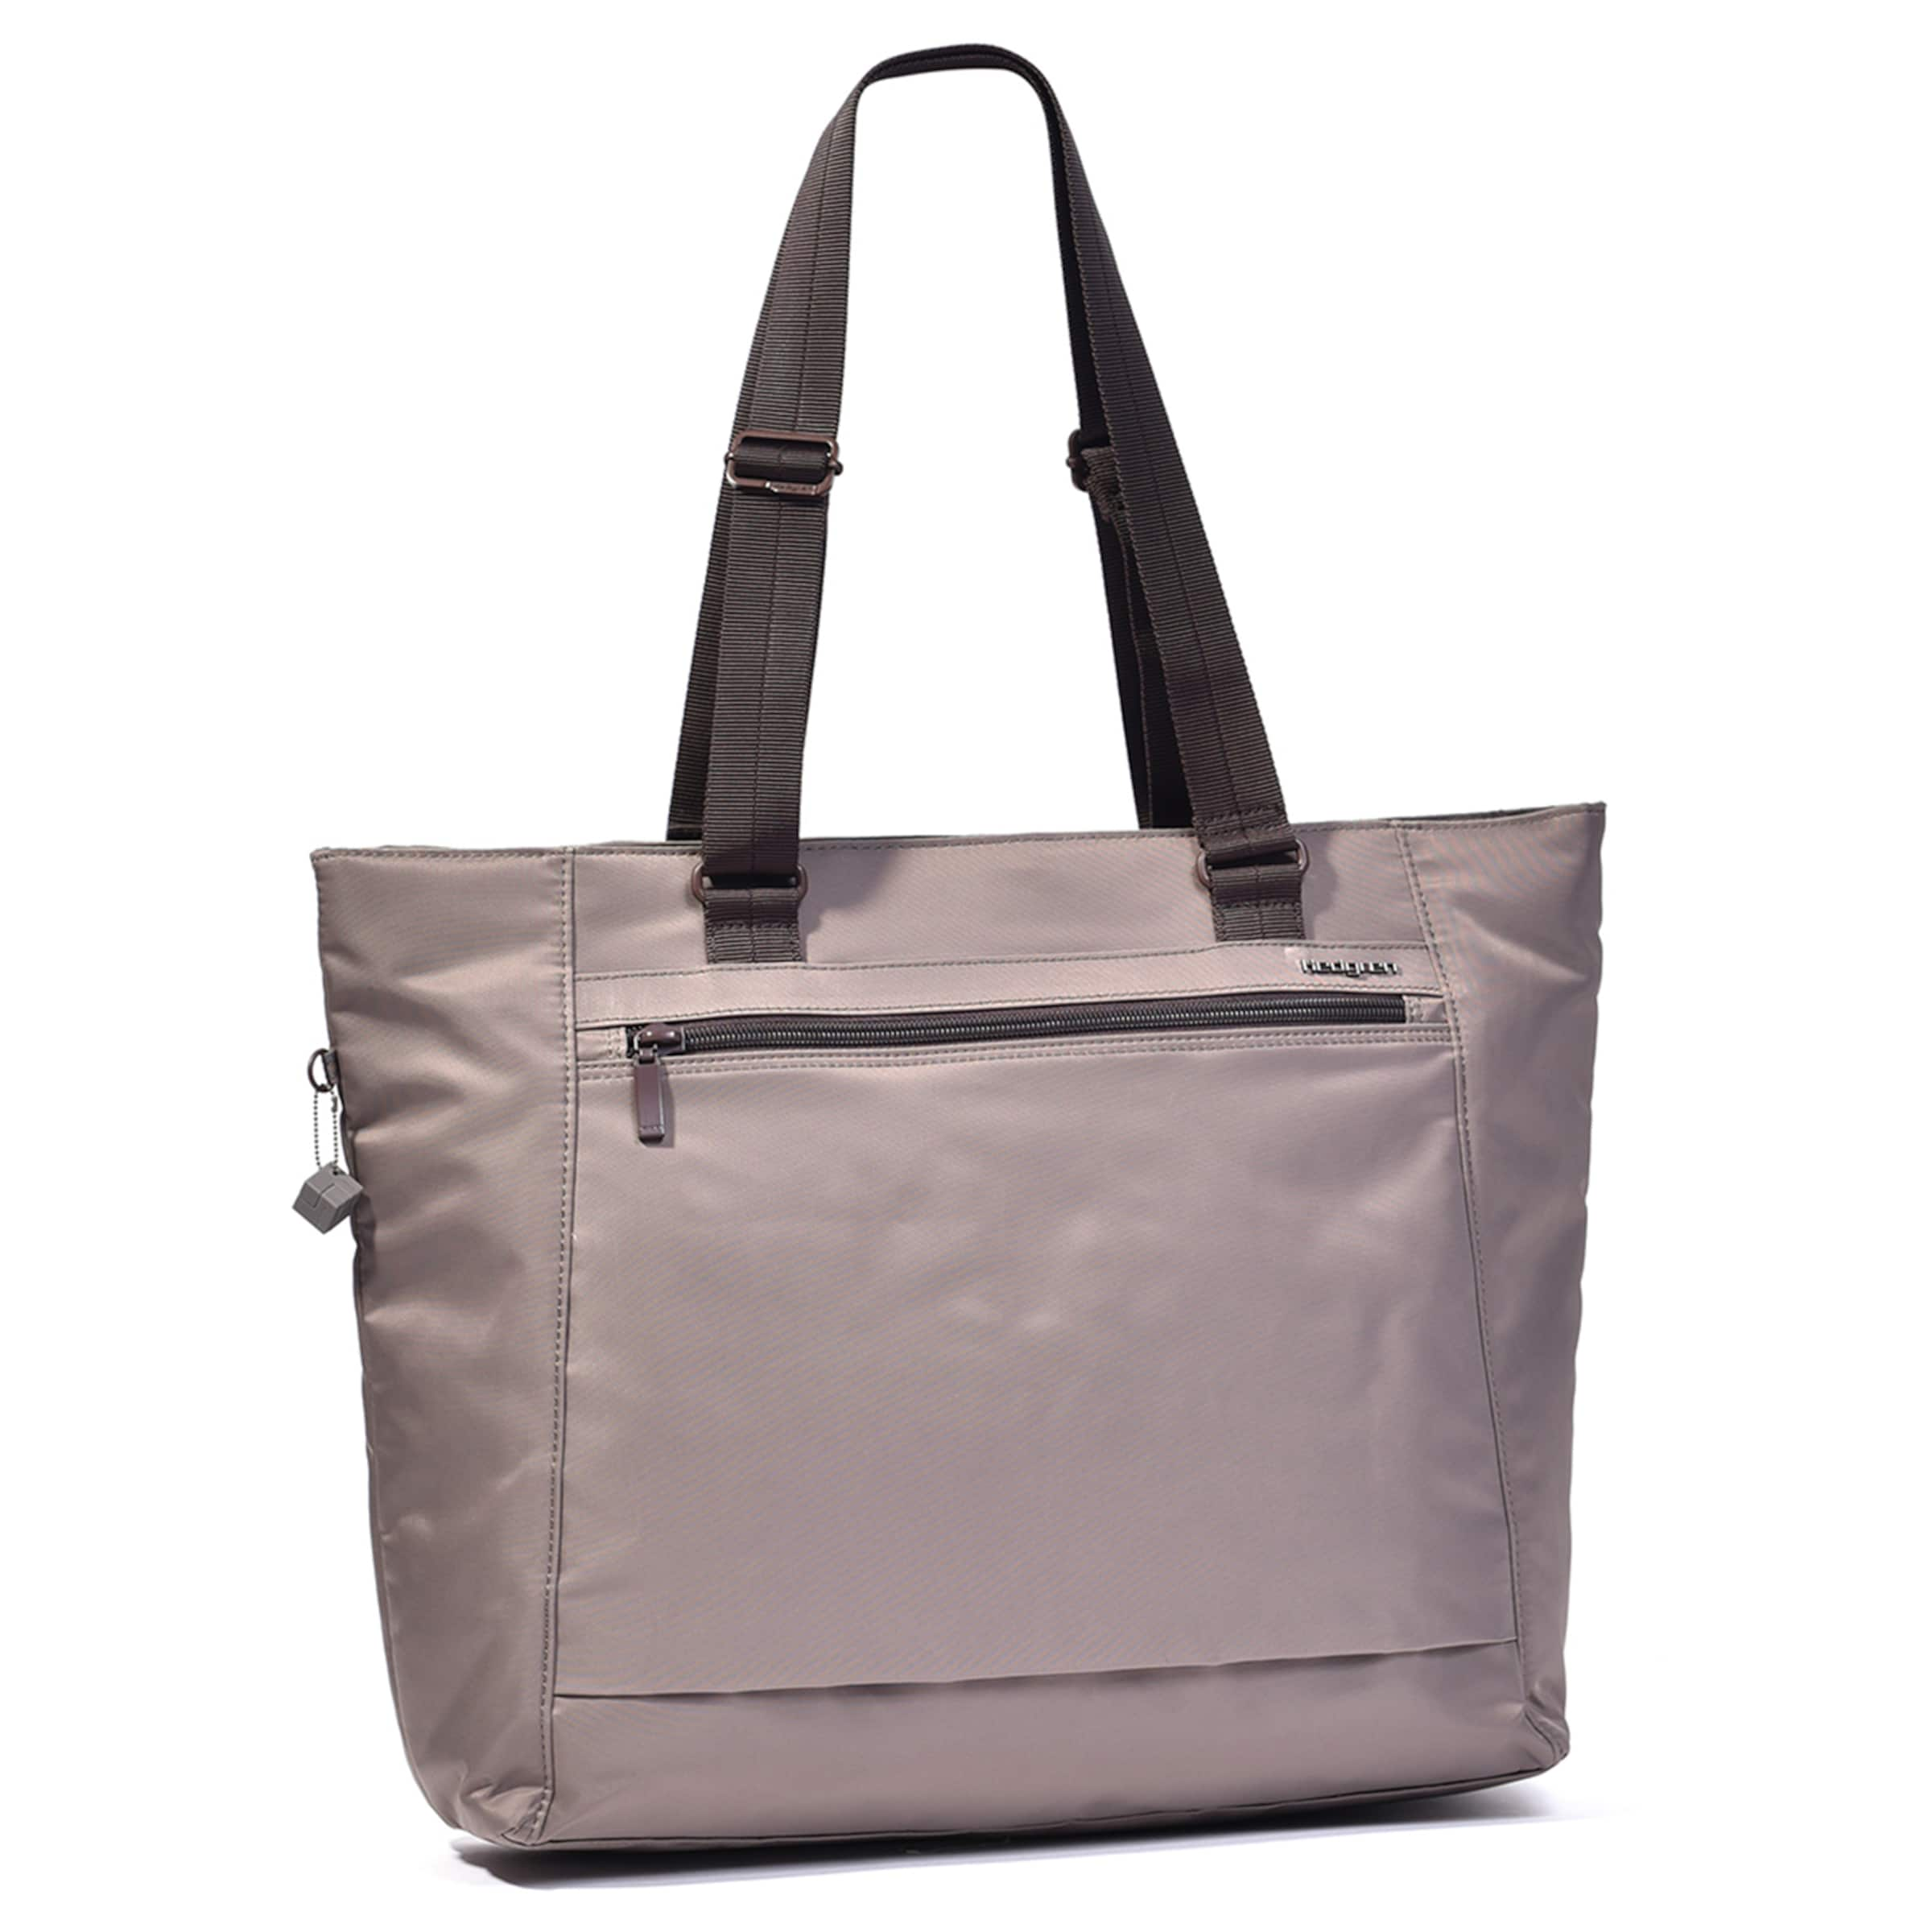 Hedgren In In In Hedgren 'elvira' Shopper 'elvira' 'elvira' Hedgren Shopper Beige Shopper Beige QrshCxtdB